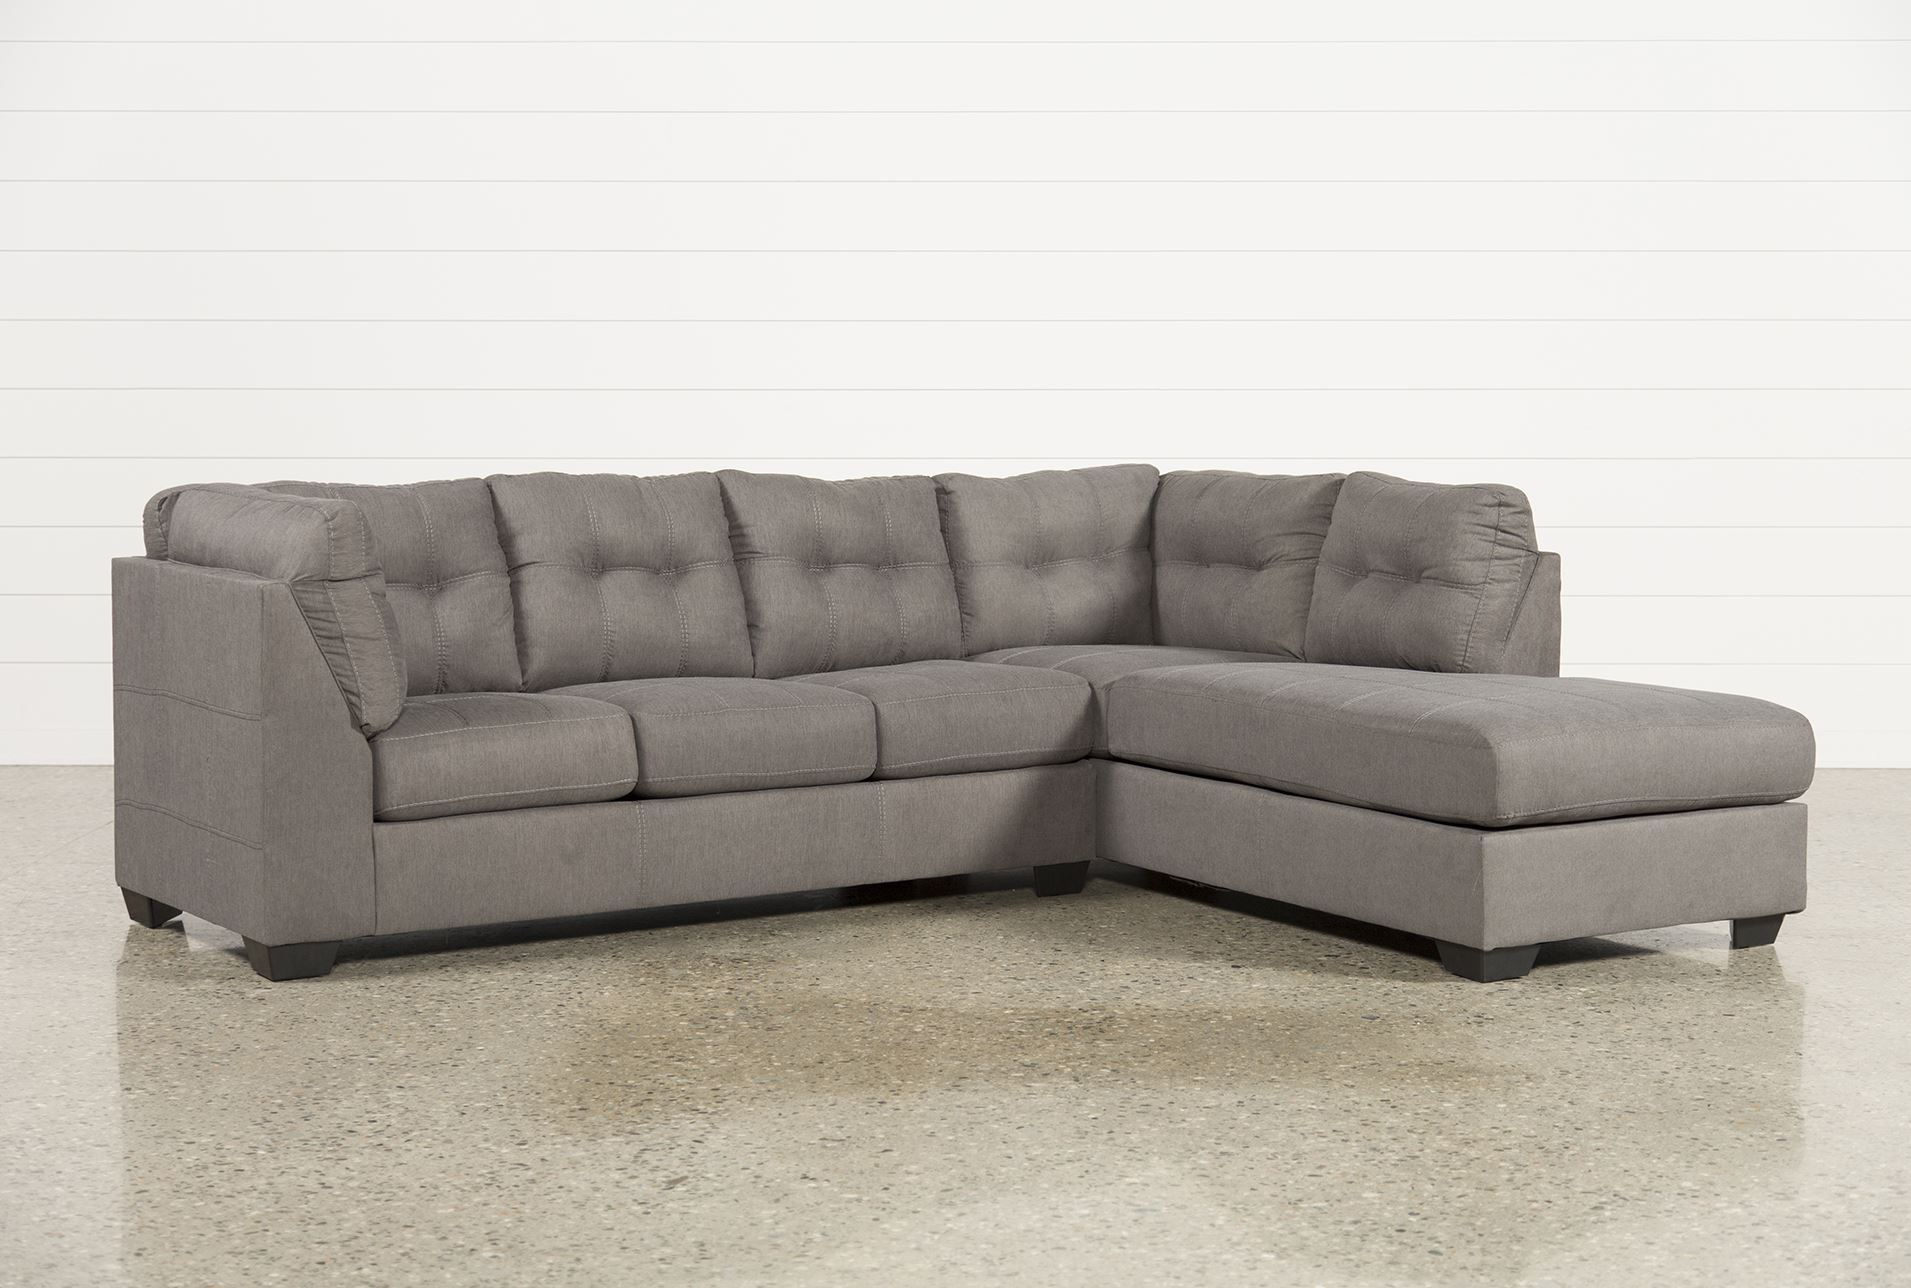 Maier charcoal 2 piece sectional w raf chaise living spaces for 2 piece chaise sectional